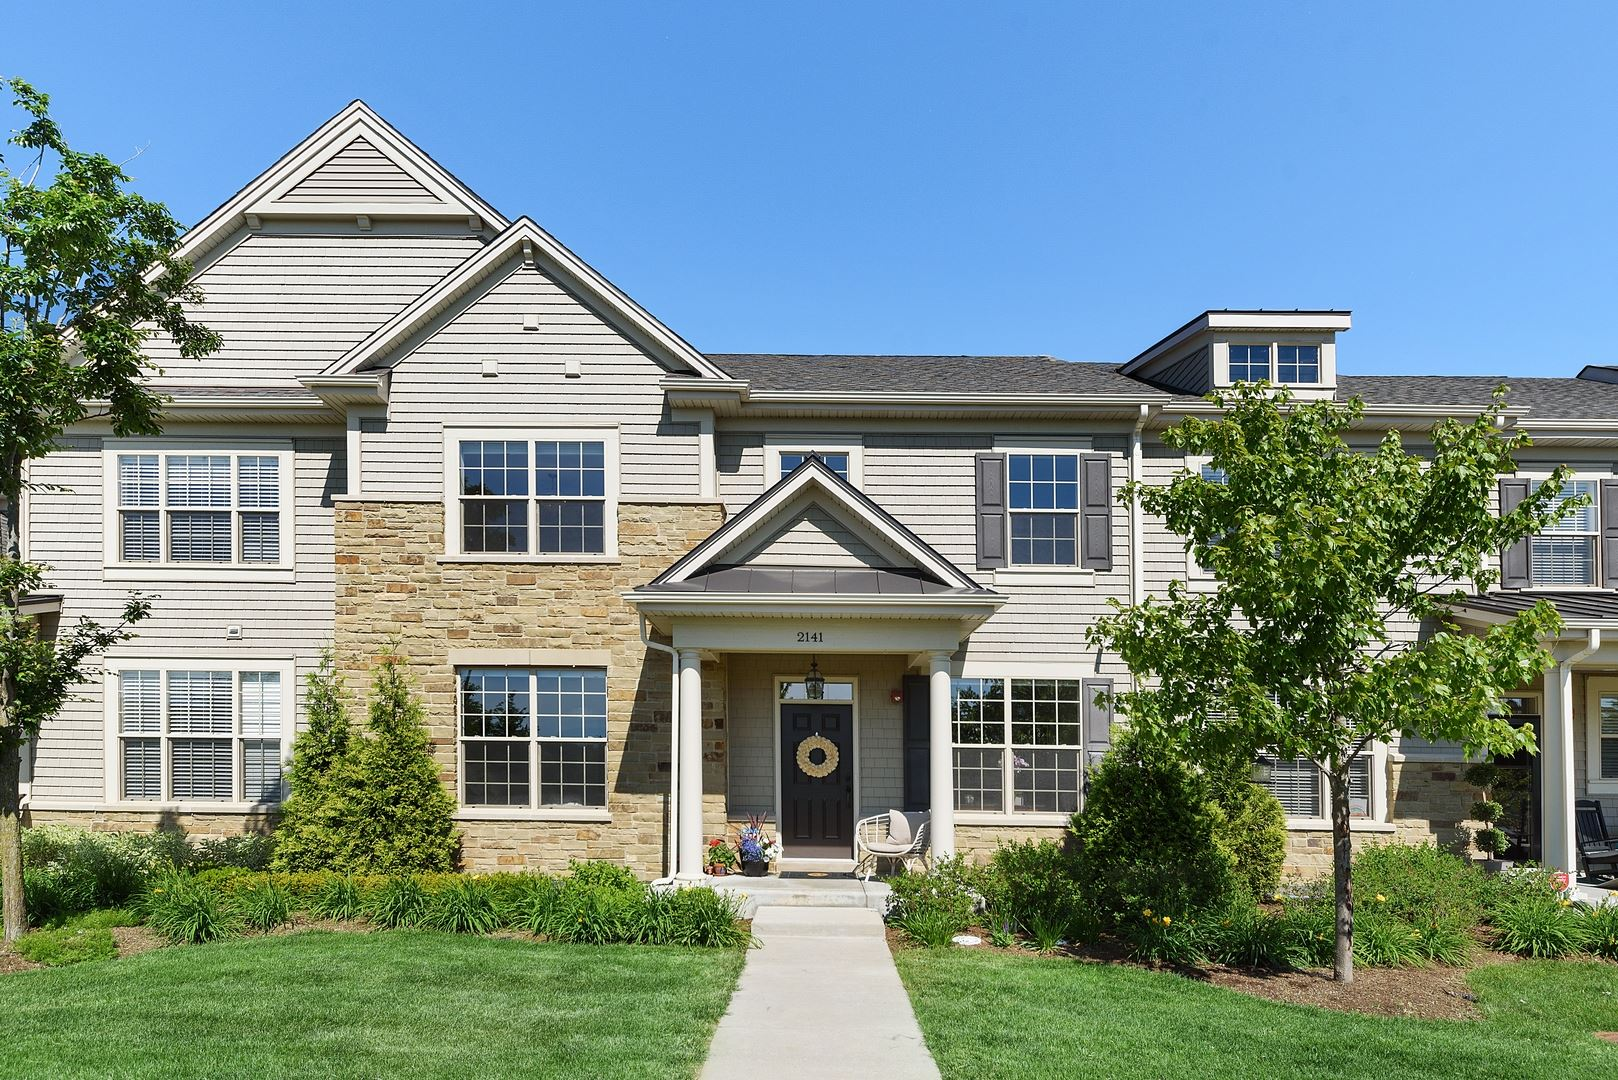 2141 Dauntless Drive, Glenview, IL 60026 - #: 10761127